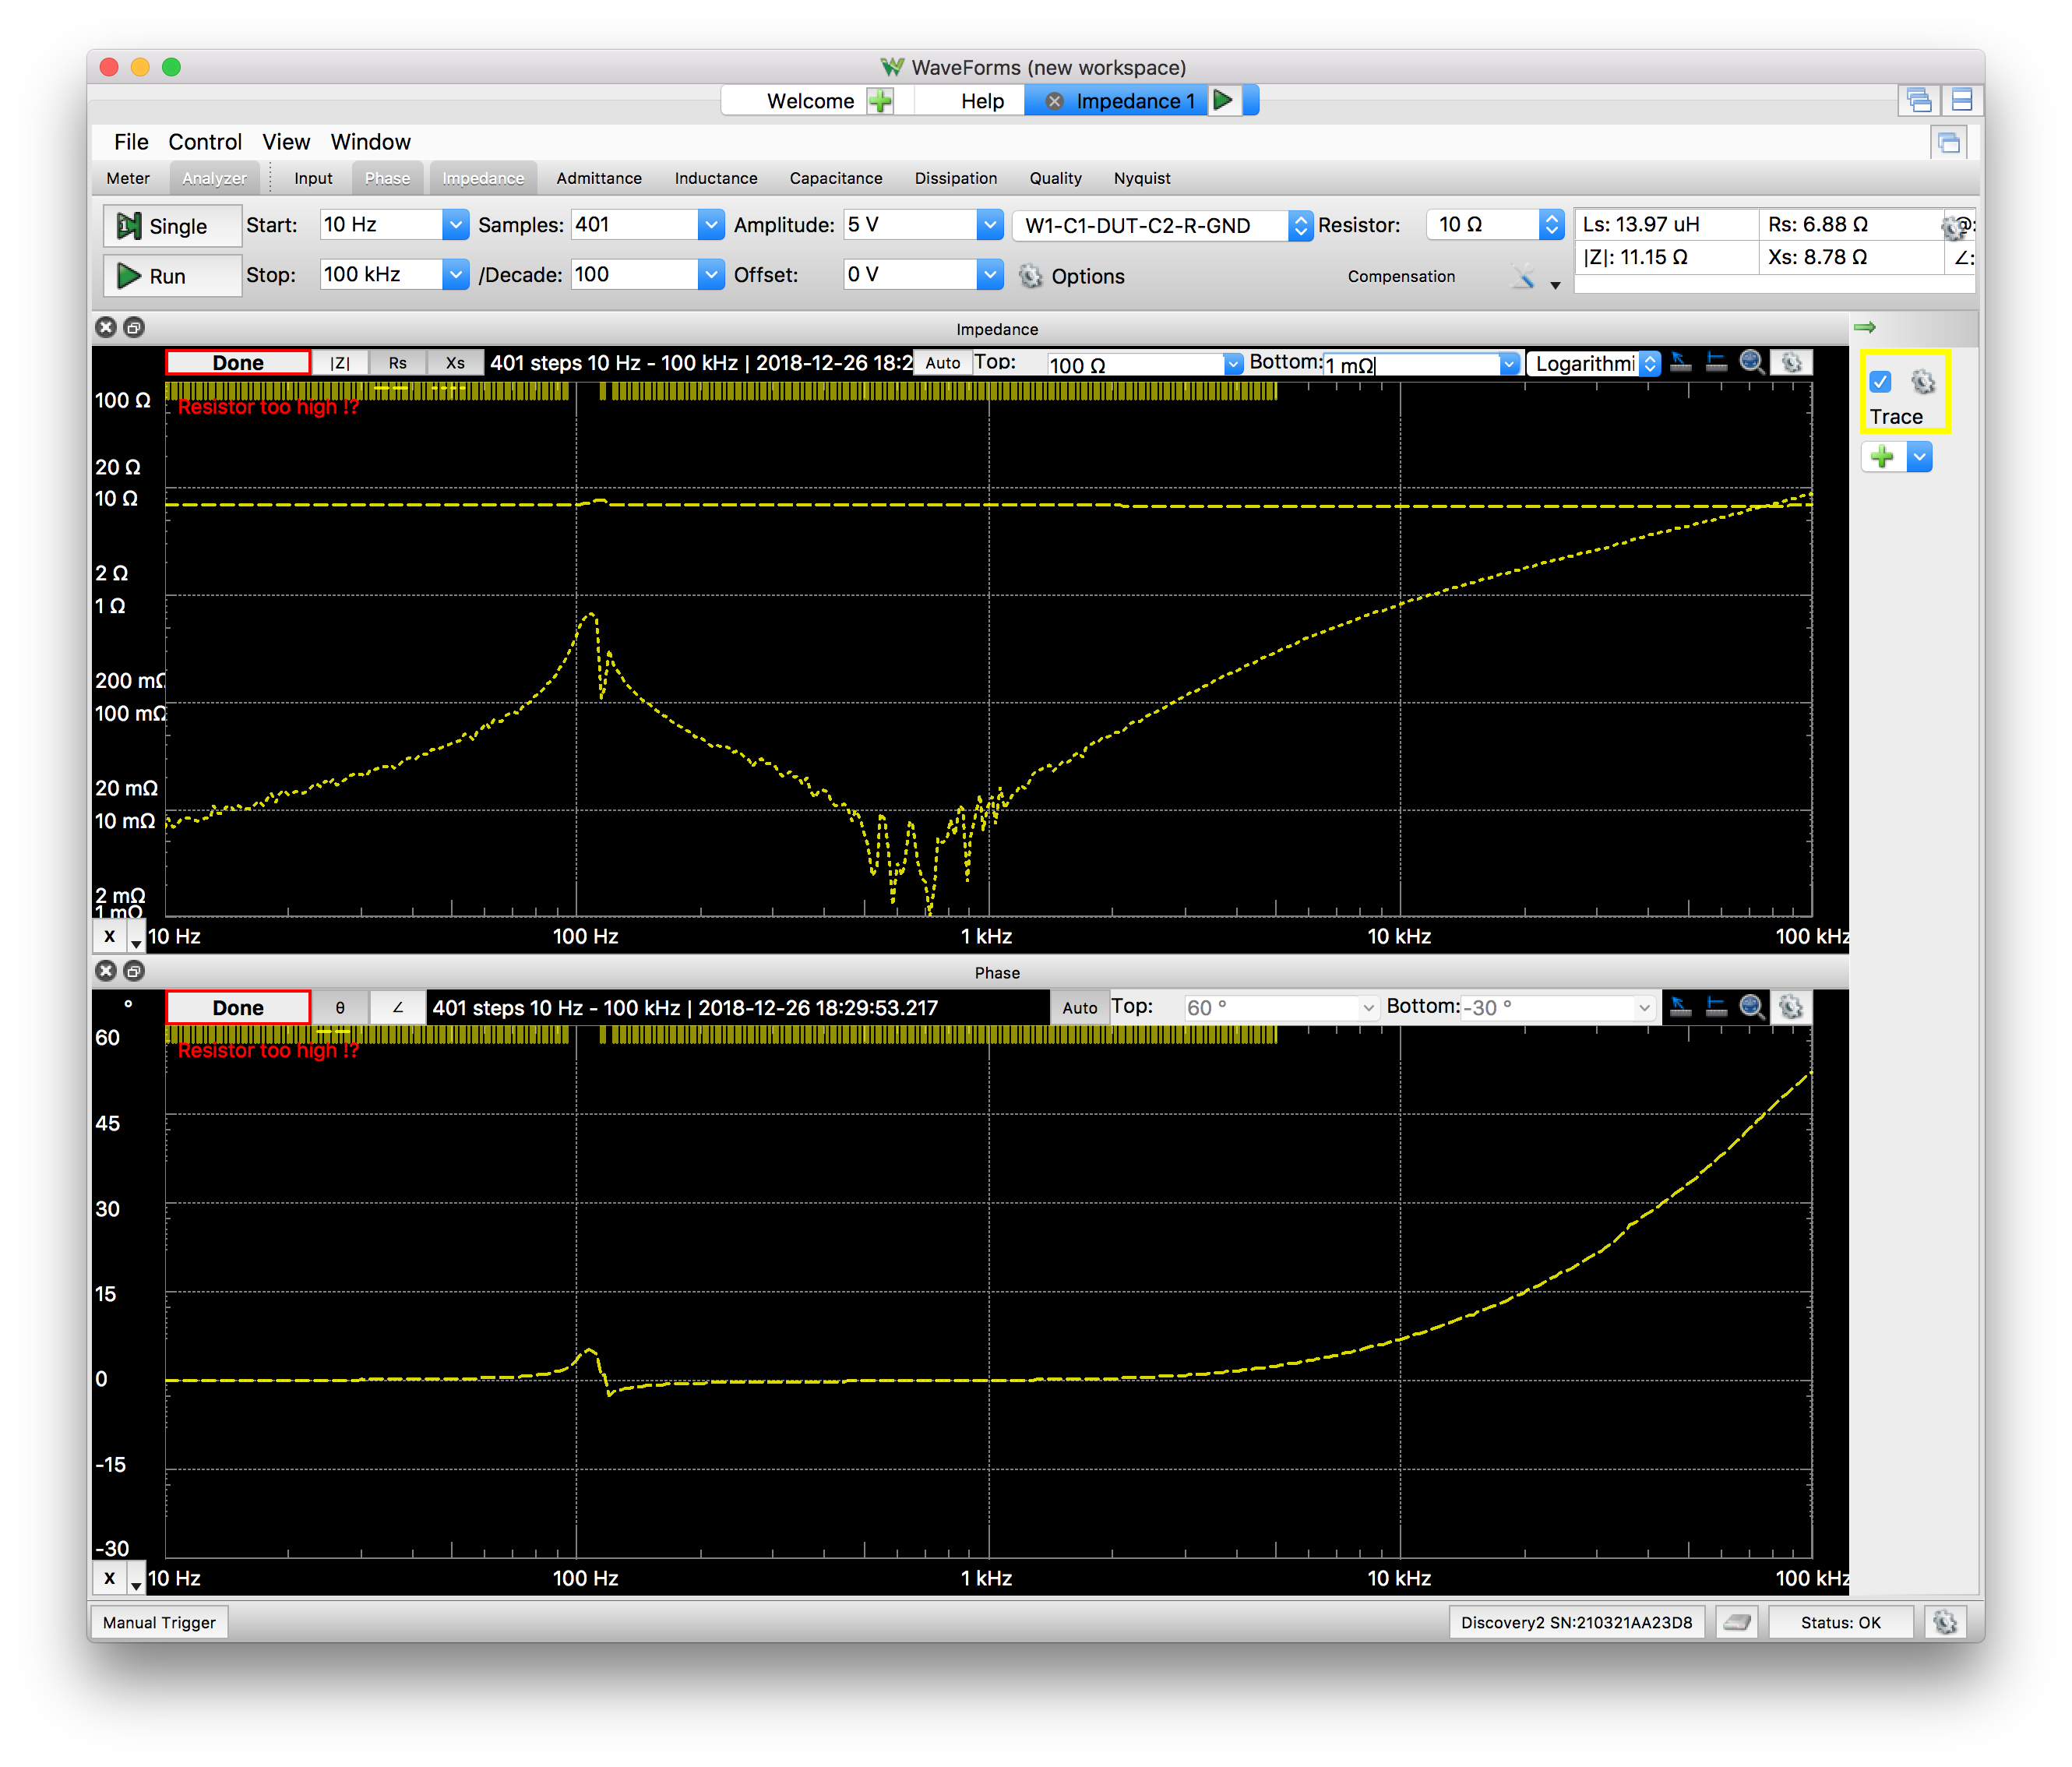 img/waveforms-impedance-1.png